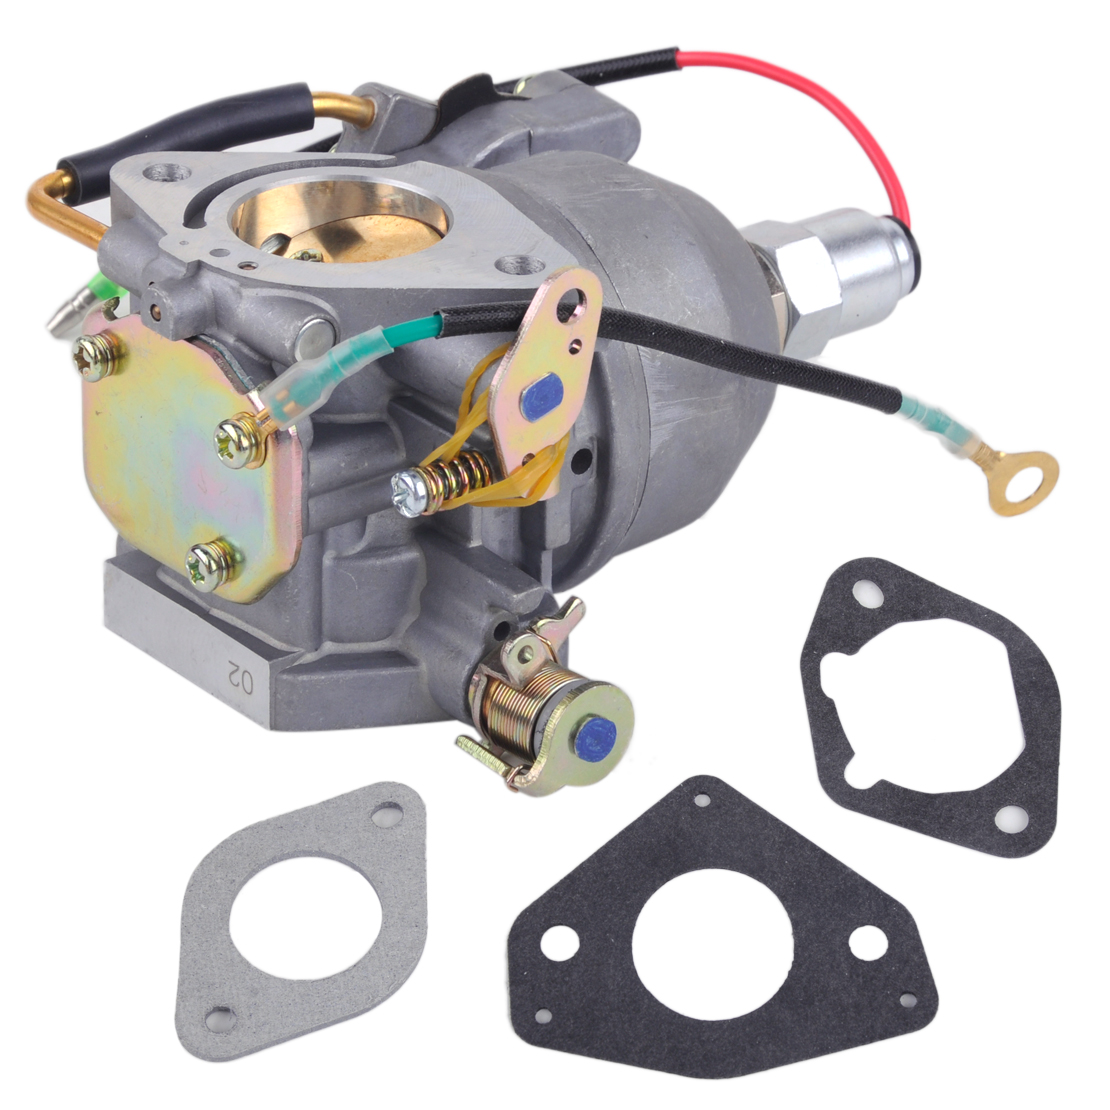 цена LETAOSK New Carburetor Carb with Solenoid Auto Engine Part fit for Kohler CV730 CV740 24853102-S 24-853-102 Replacement Set